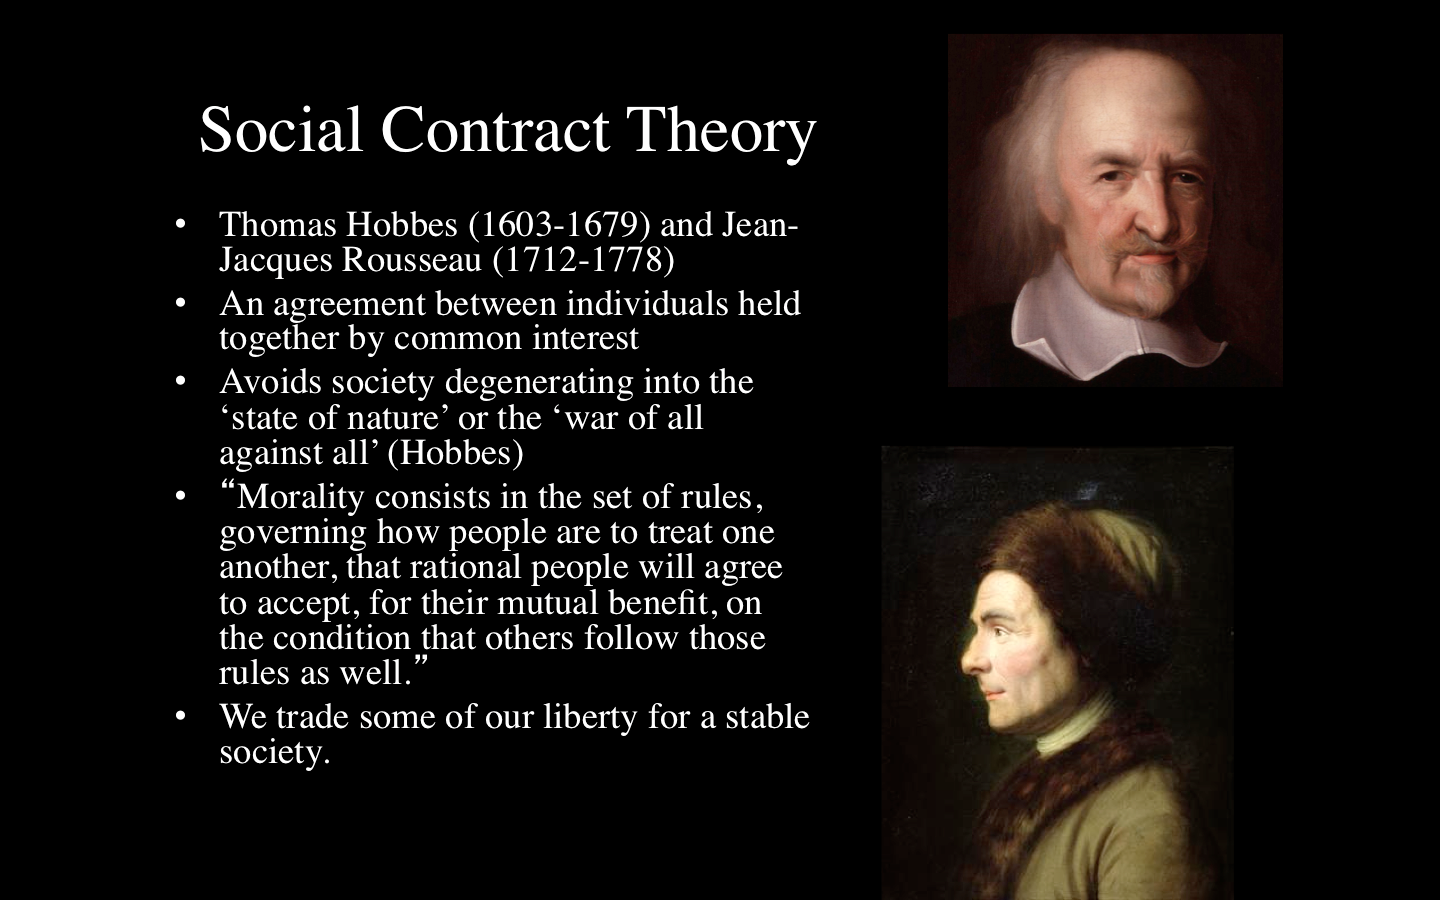 john lockes social contract theory essay Locke is equally famous for his understanding of ideas and his theory of knowledge, found in his essay concerning human understanding locke explains that locke was an english philosopher born in wrington, england in 1632.